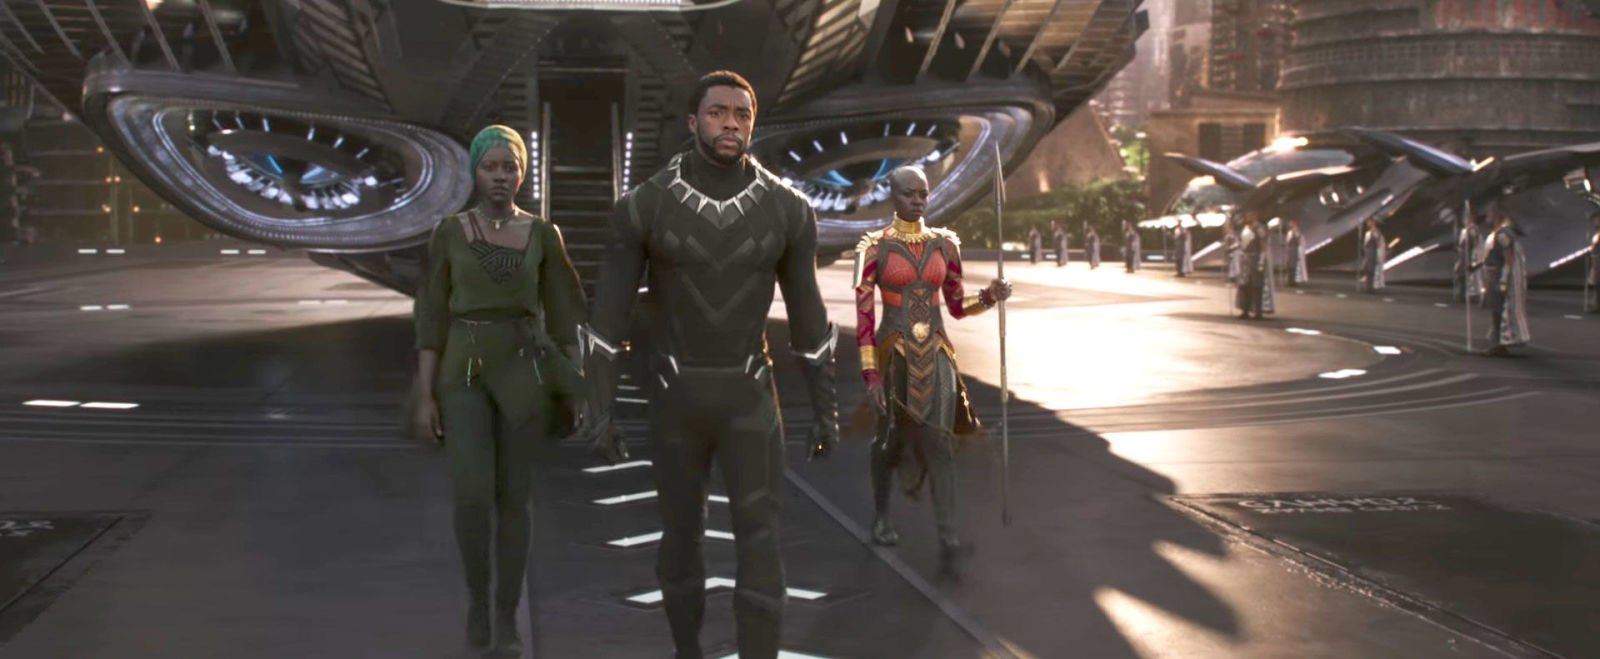 Marvel's Black Panther first reviews